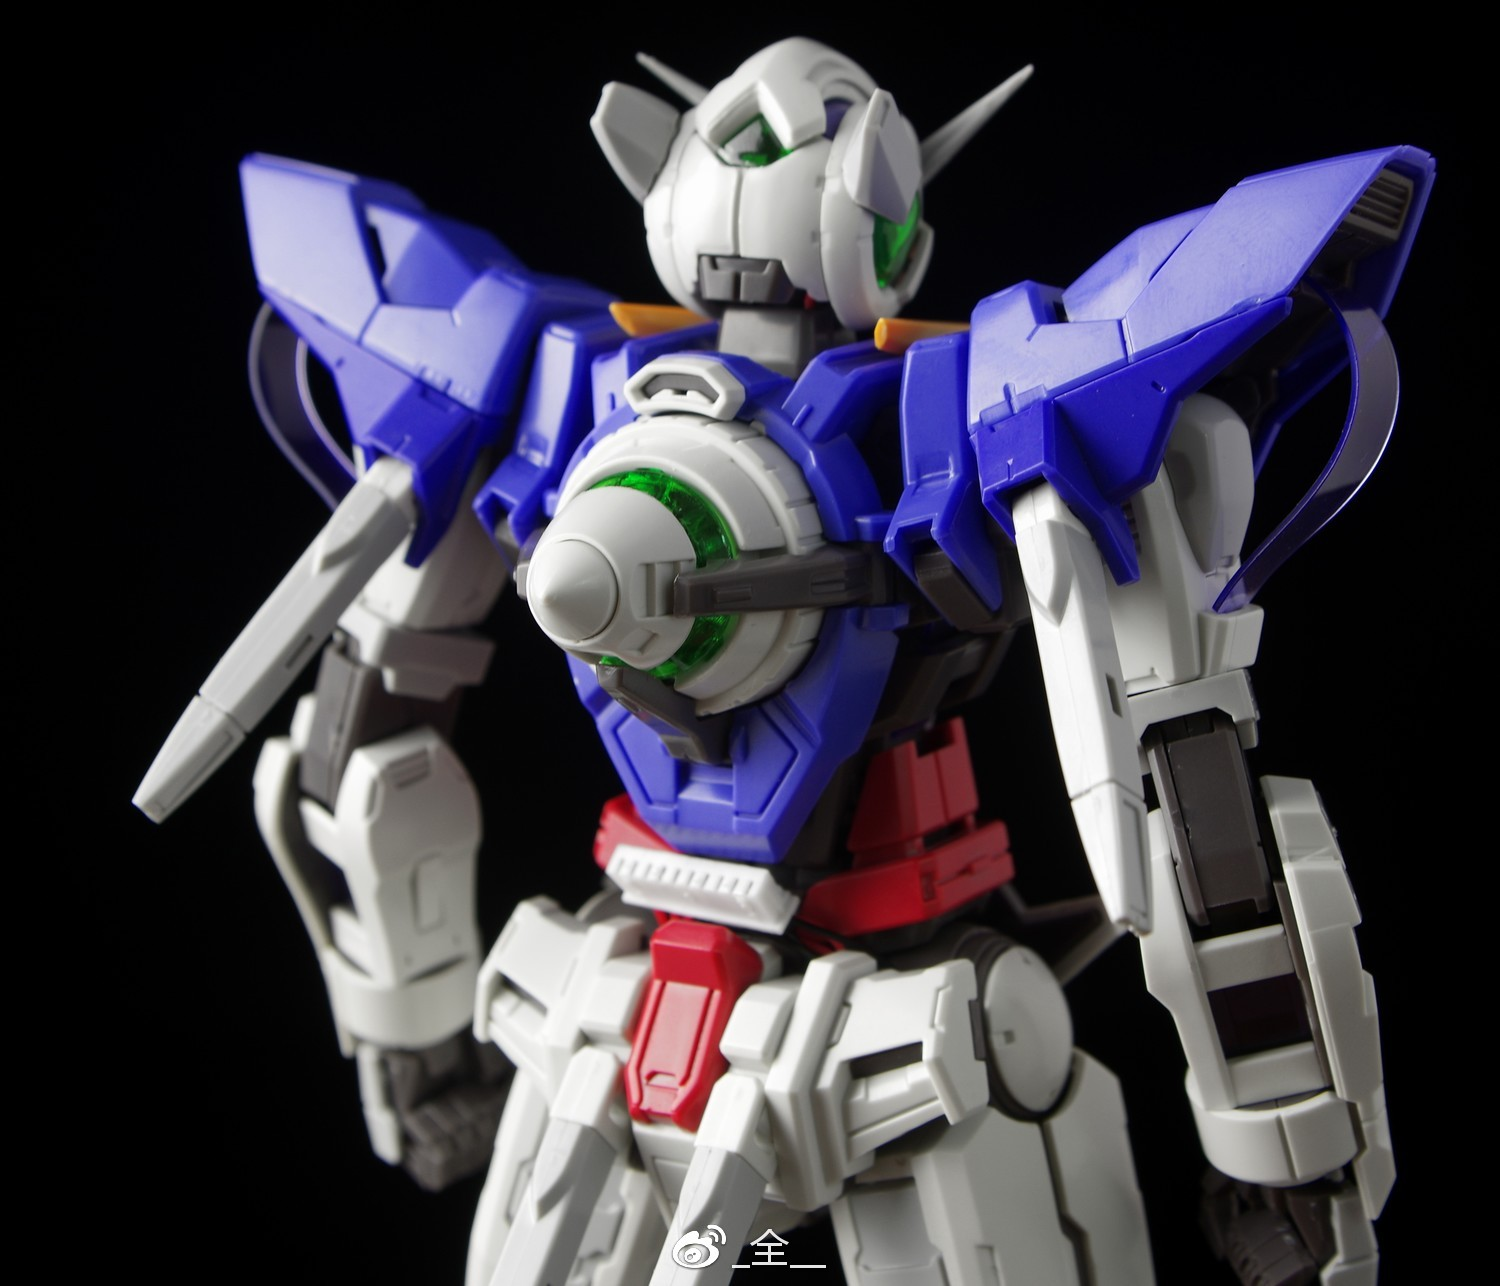 S269_mg_exia_led_hobby_star_inask_038.jpg